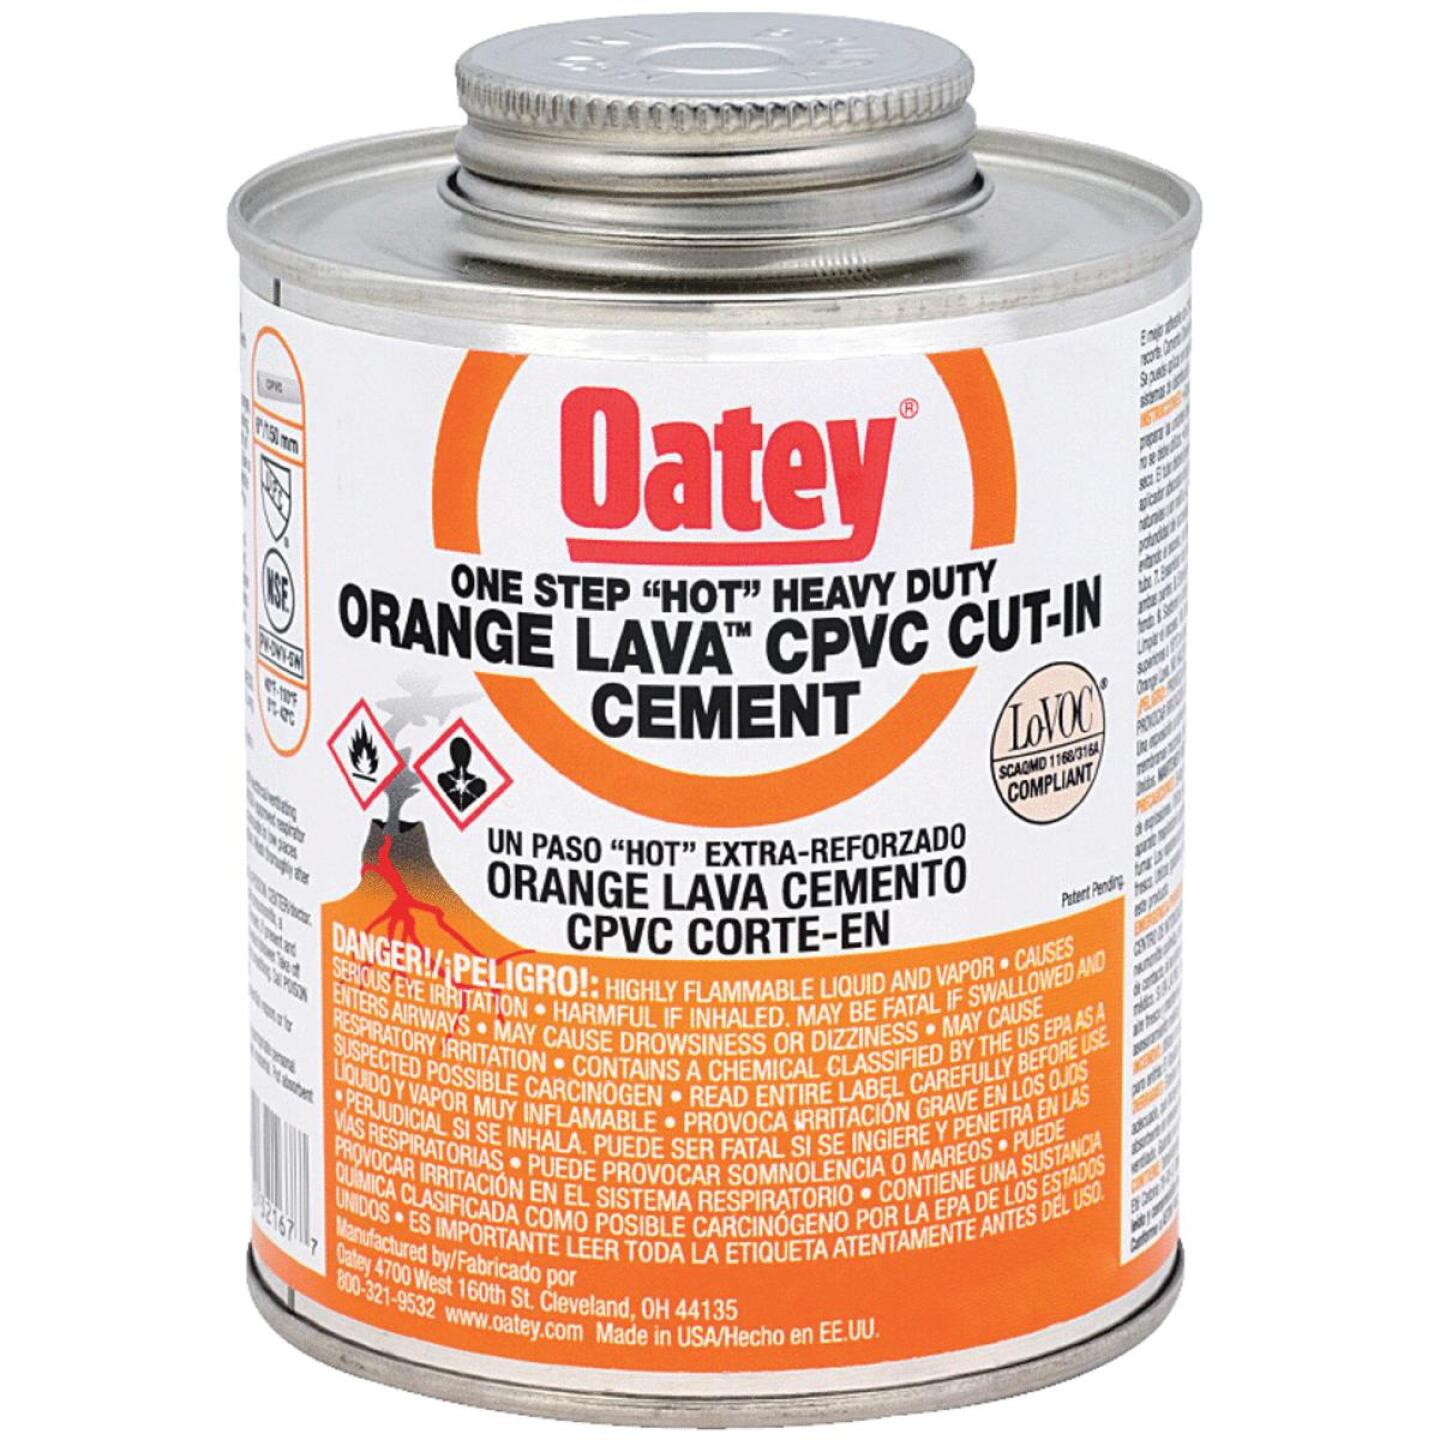 Oatey Lava 1/2 Pt.Lava Hot CPVC Cement Orange CPVC Cement Image 1